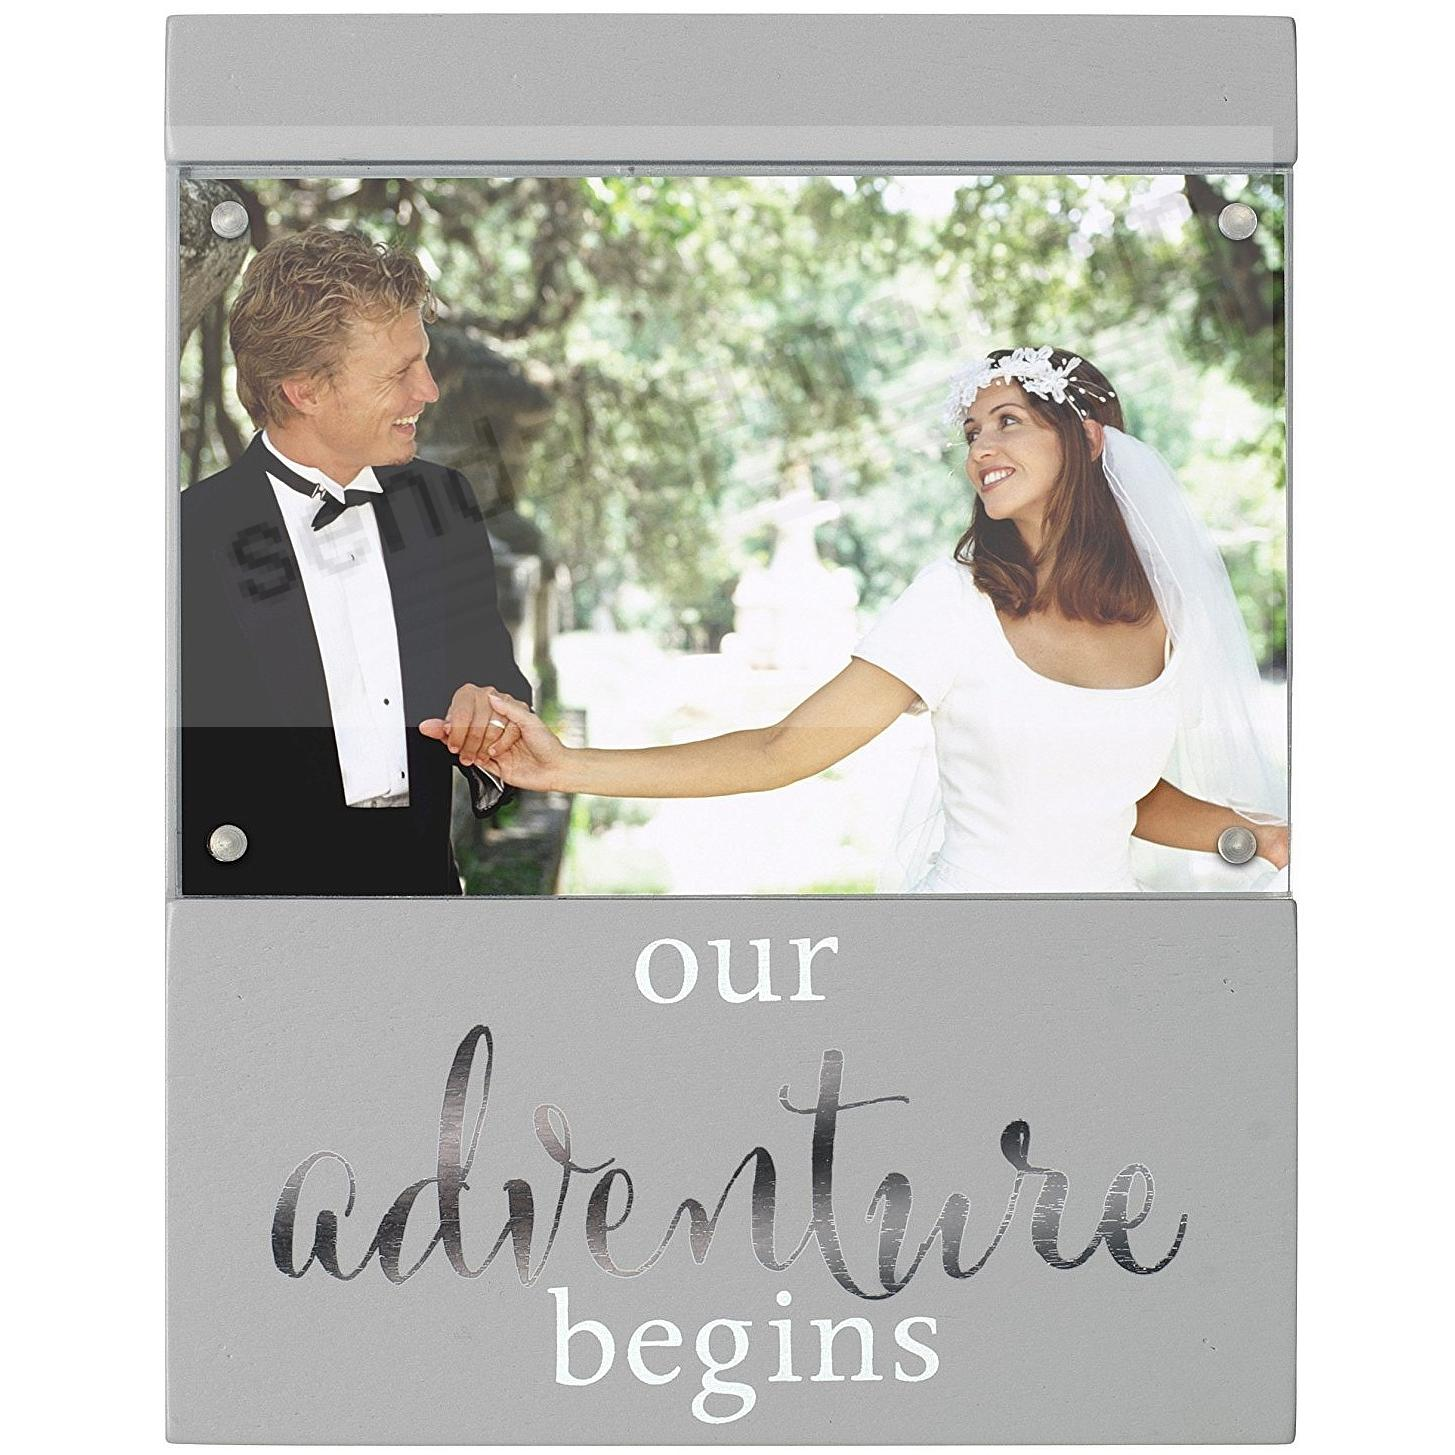 OUR ADVENTURE BEGINS Gray 4x6 frame by Malden®